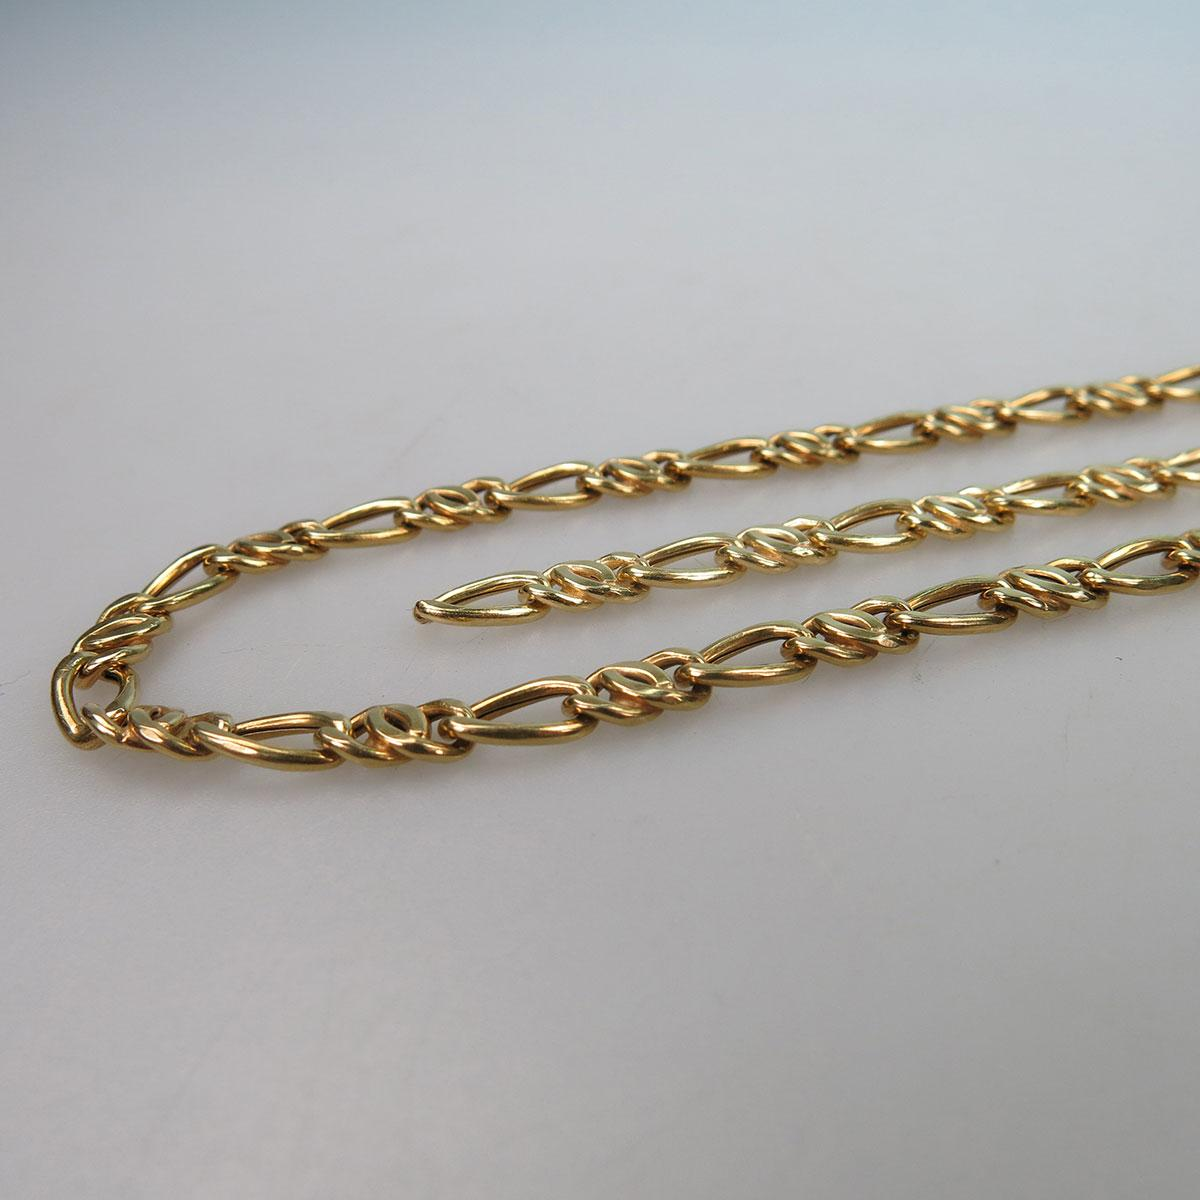 Italian 18k Yellow Gold Modified Curb Link Chain